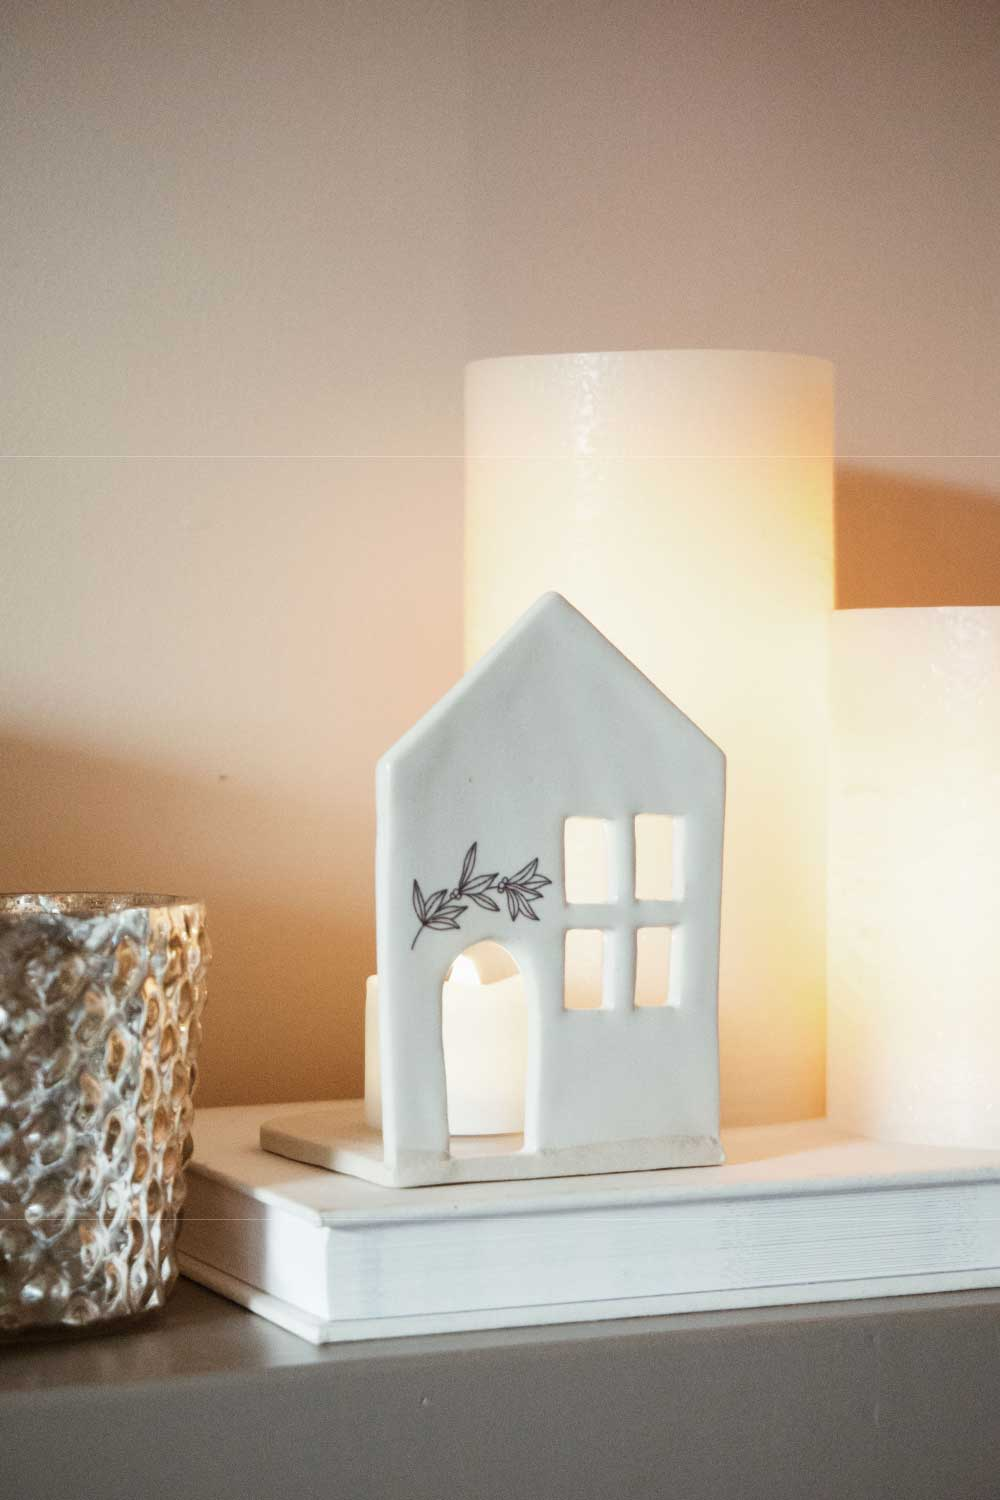 Tea Light House - Small - MMPxNN